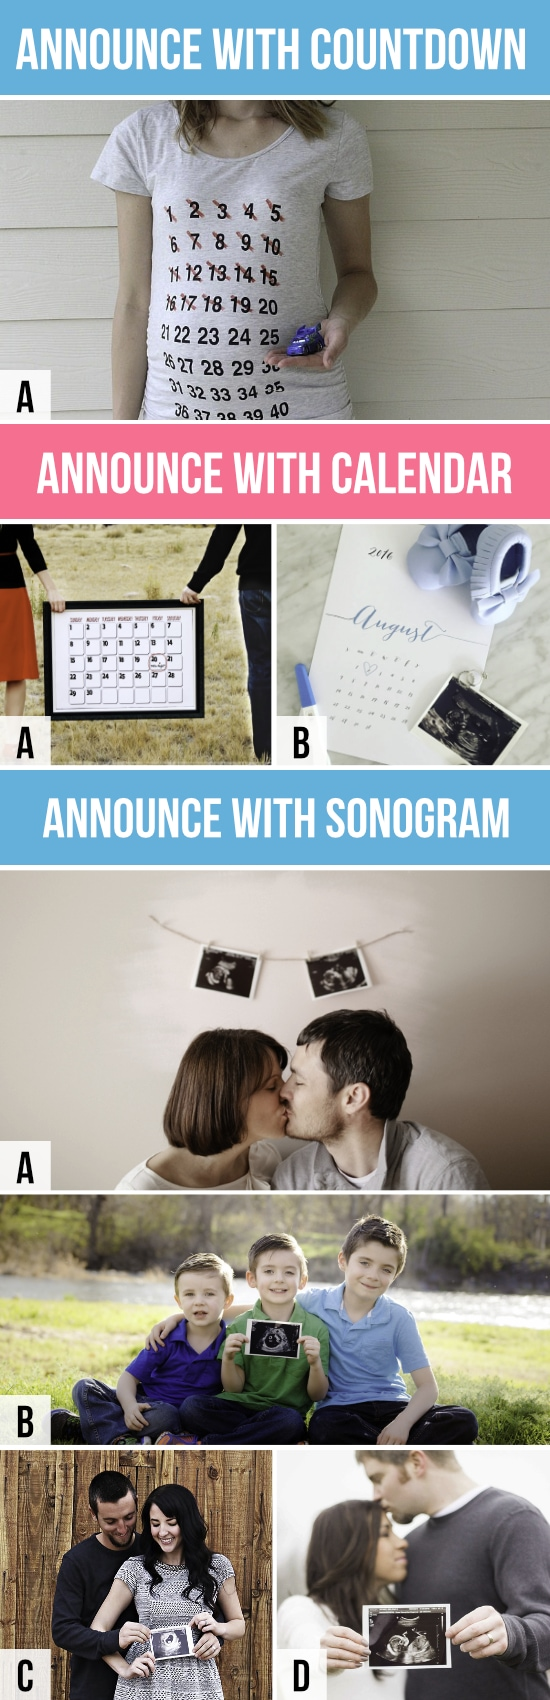 Pregnancy Announcements with Calendar